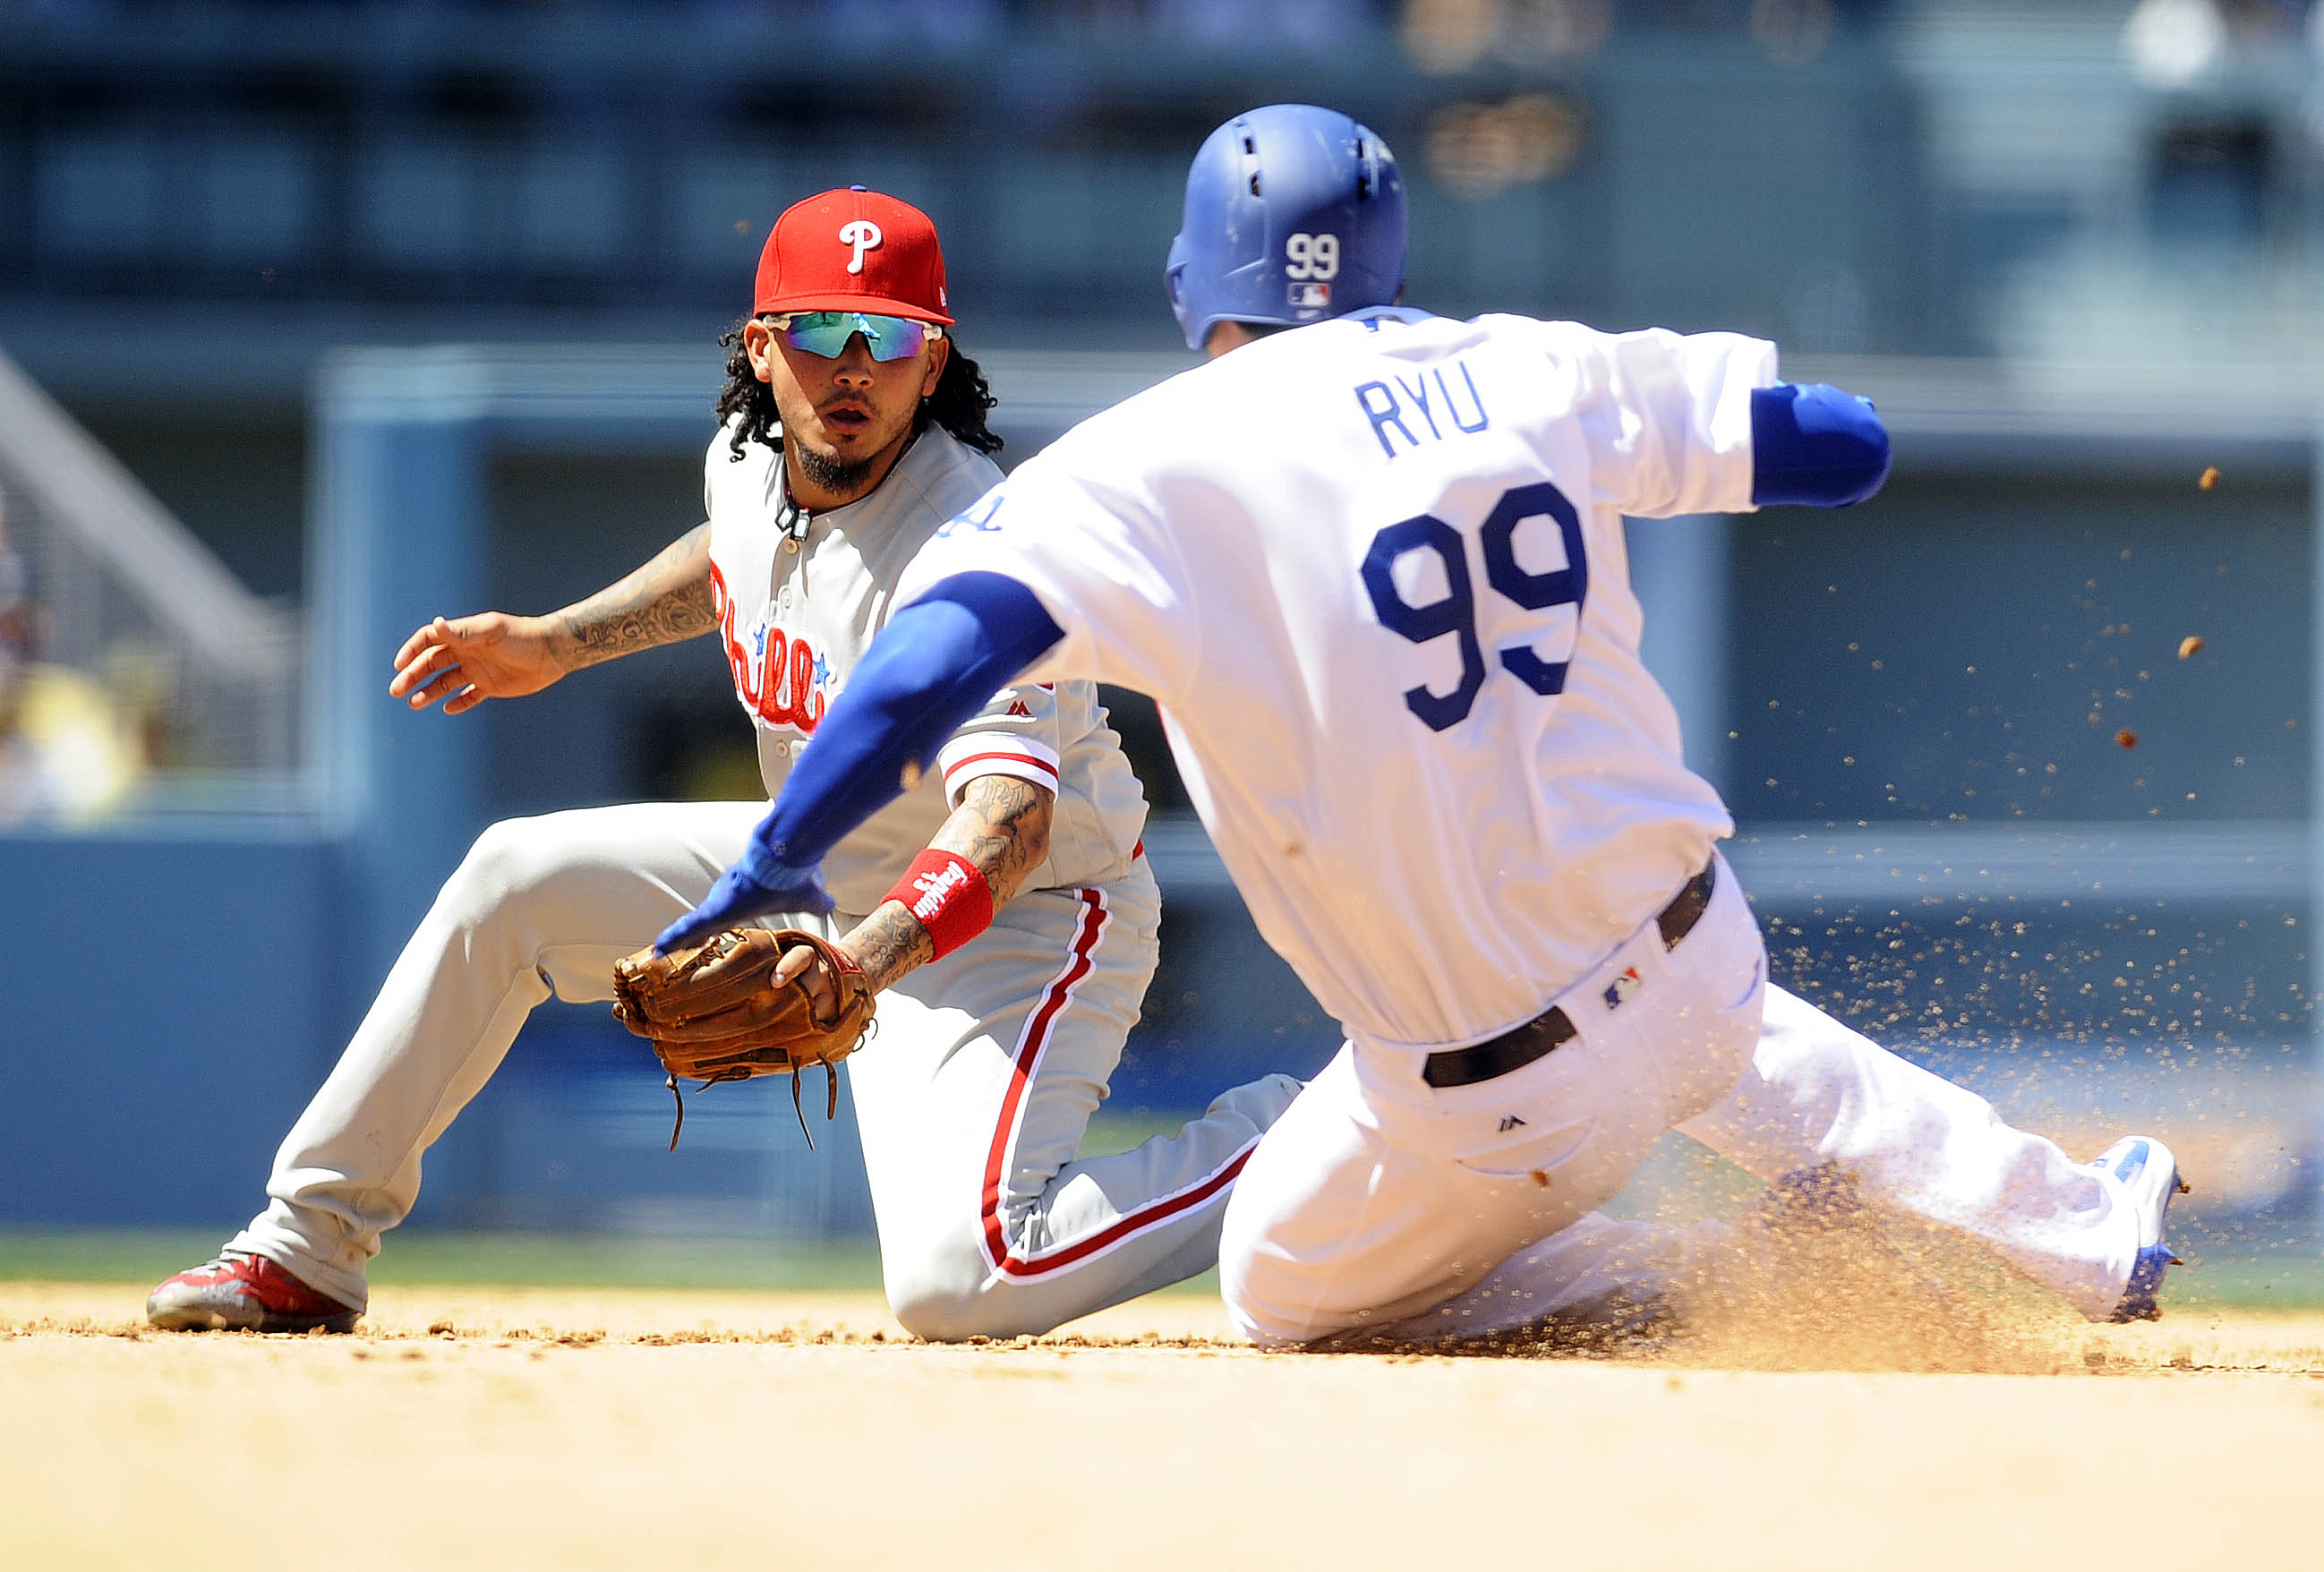 10037982-mlb-philadelphia-phillies-at-los-angeles-dodgers